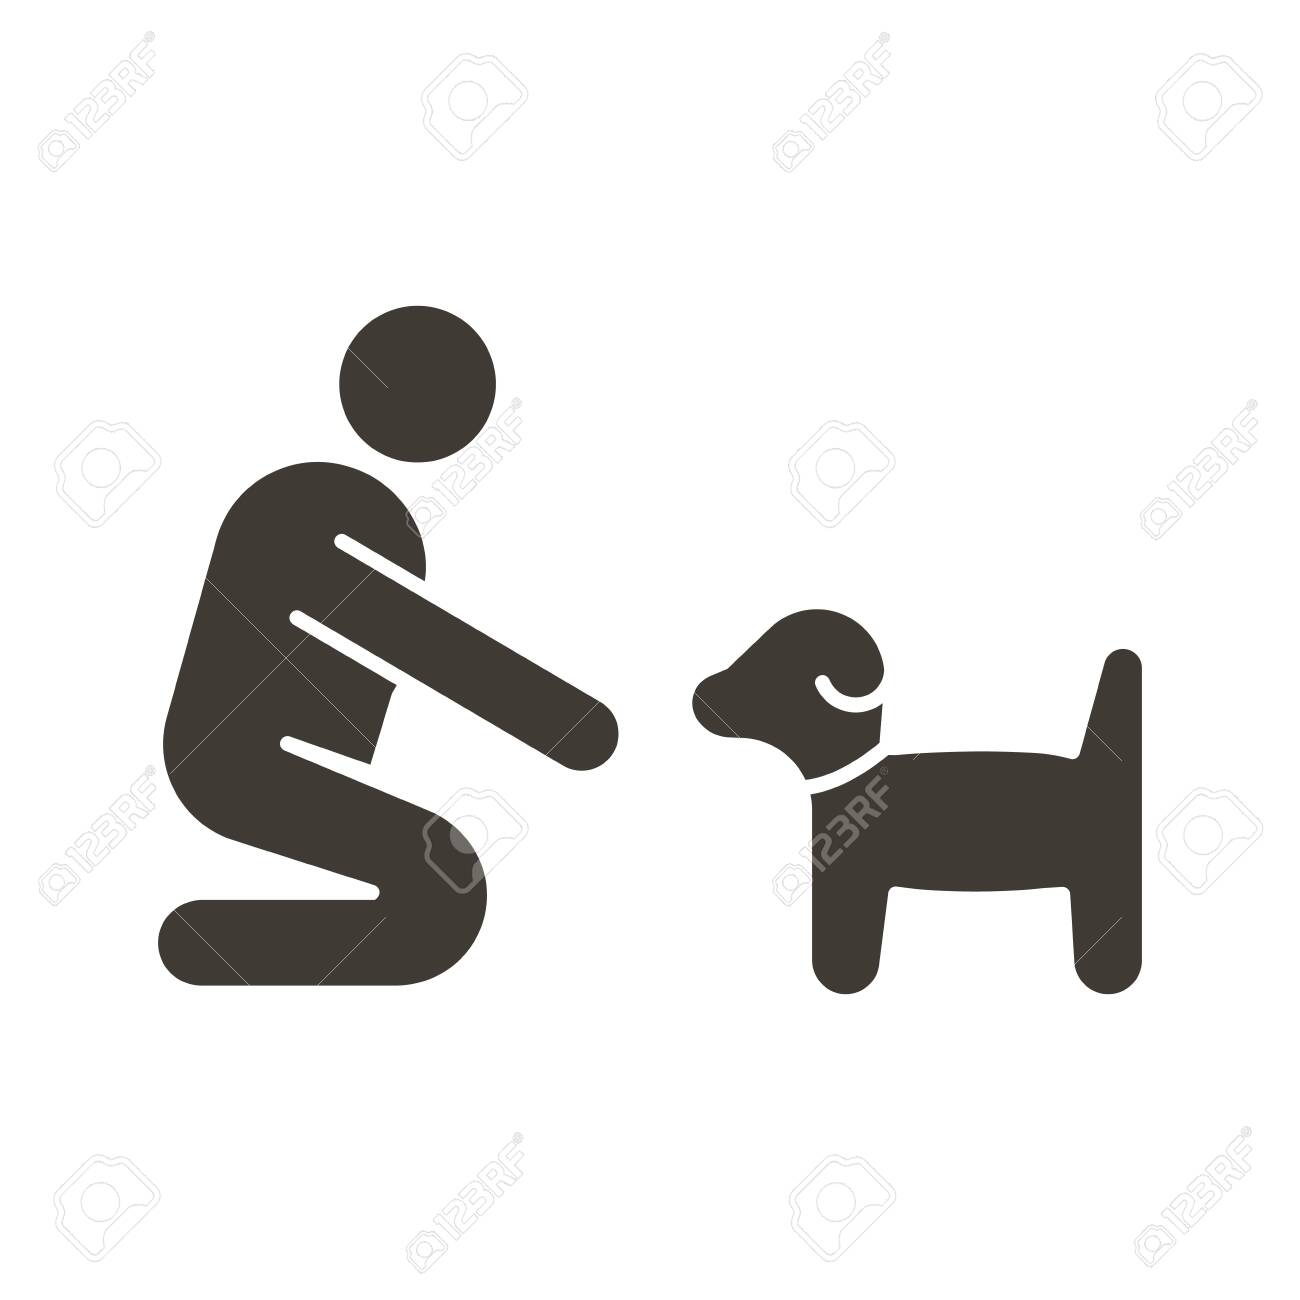 Person with small dog or puppy icon. Vector flat glyph illustration. Can fit different concepts. Pet training, adoption, helping abandoned animal, feeding, love between owner and dog. - 134503193